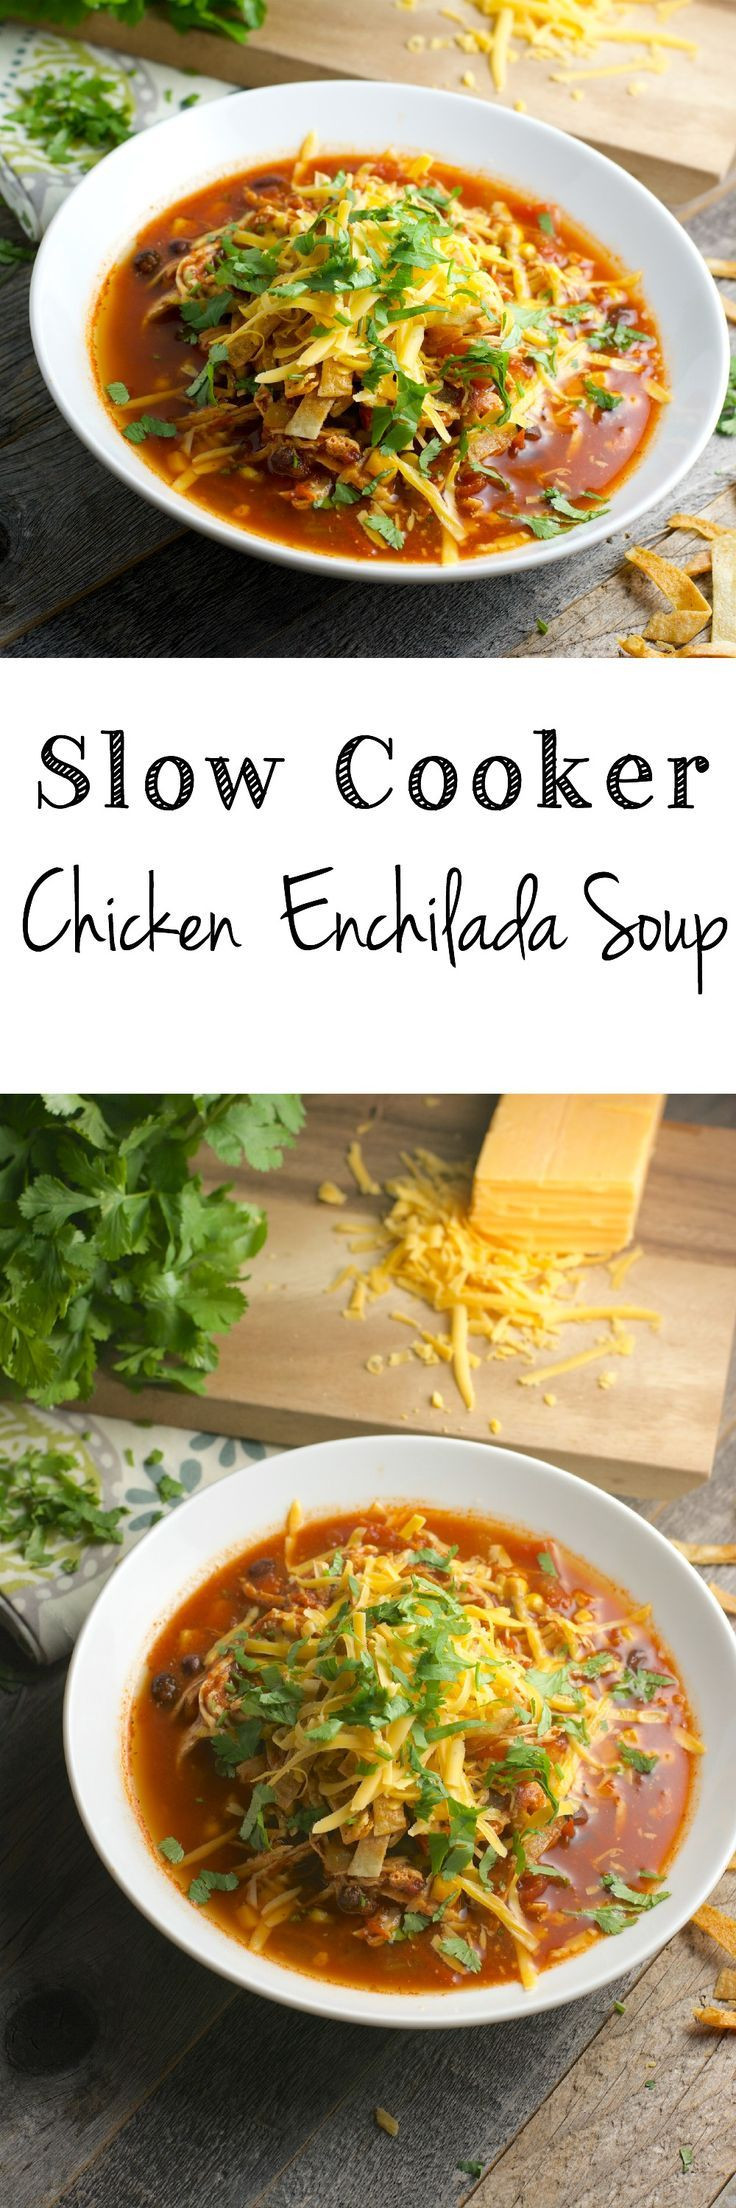 Healthy Chicken Enchilada Soup  Slow Cooker Chicken Enchilada Soup Healthy easy and